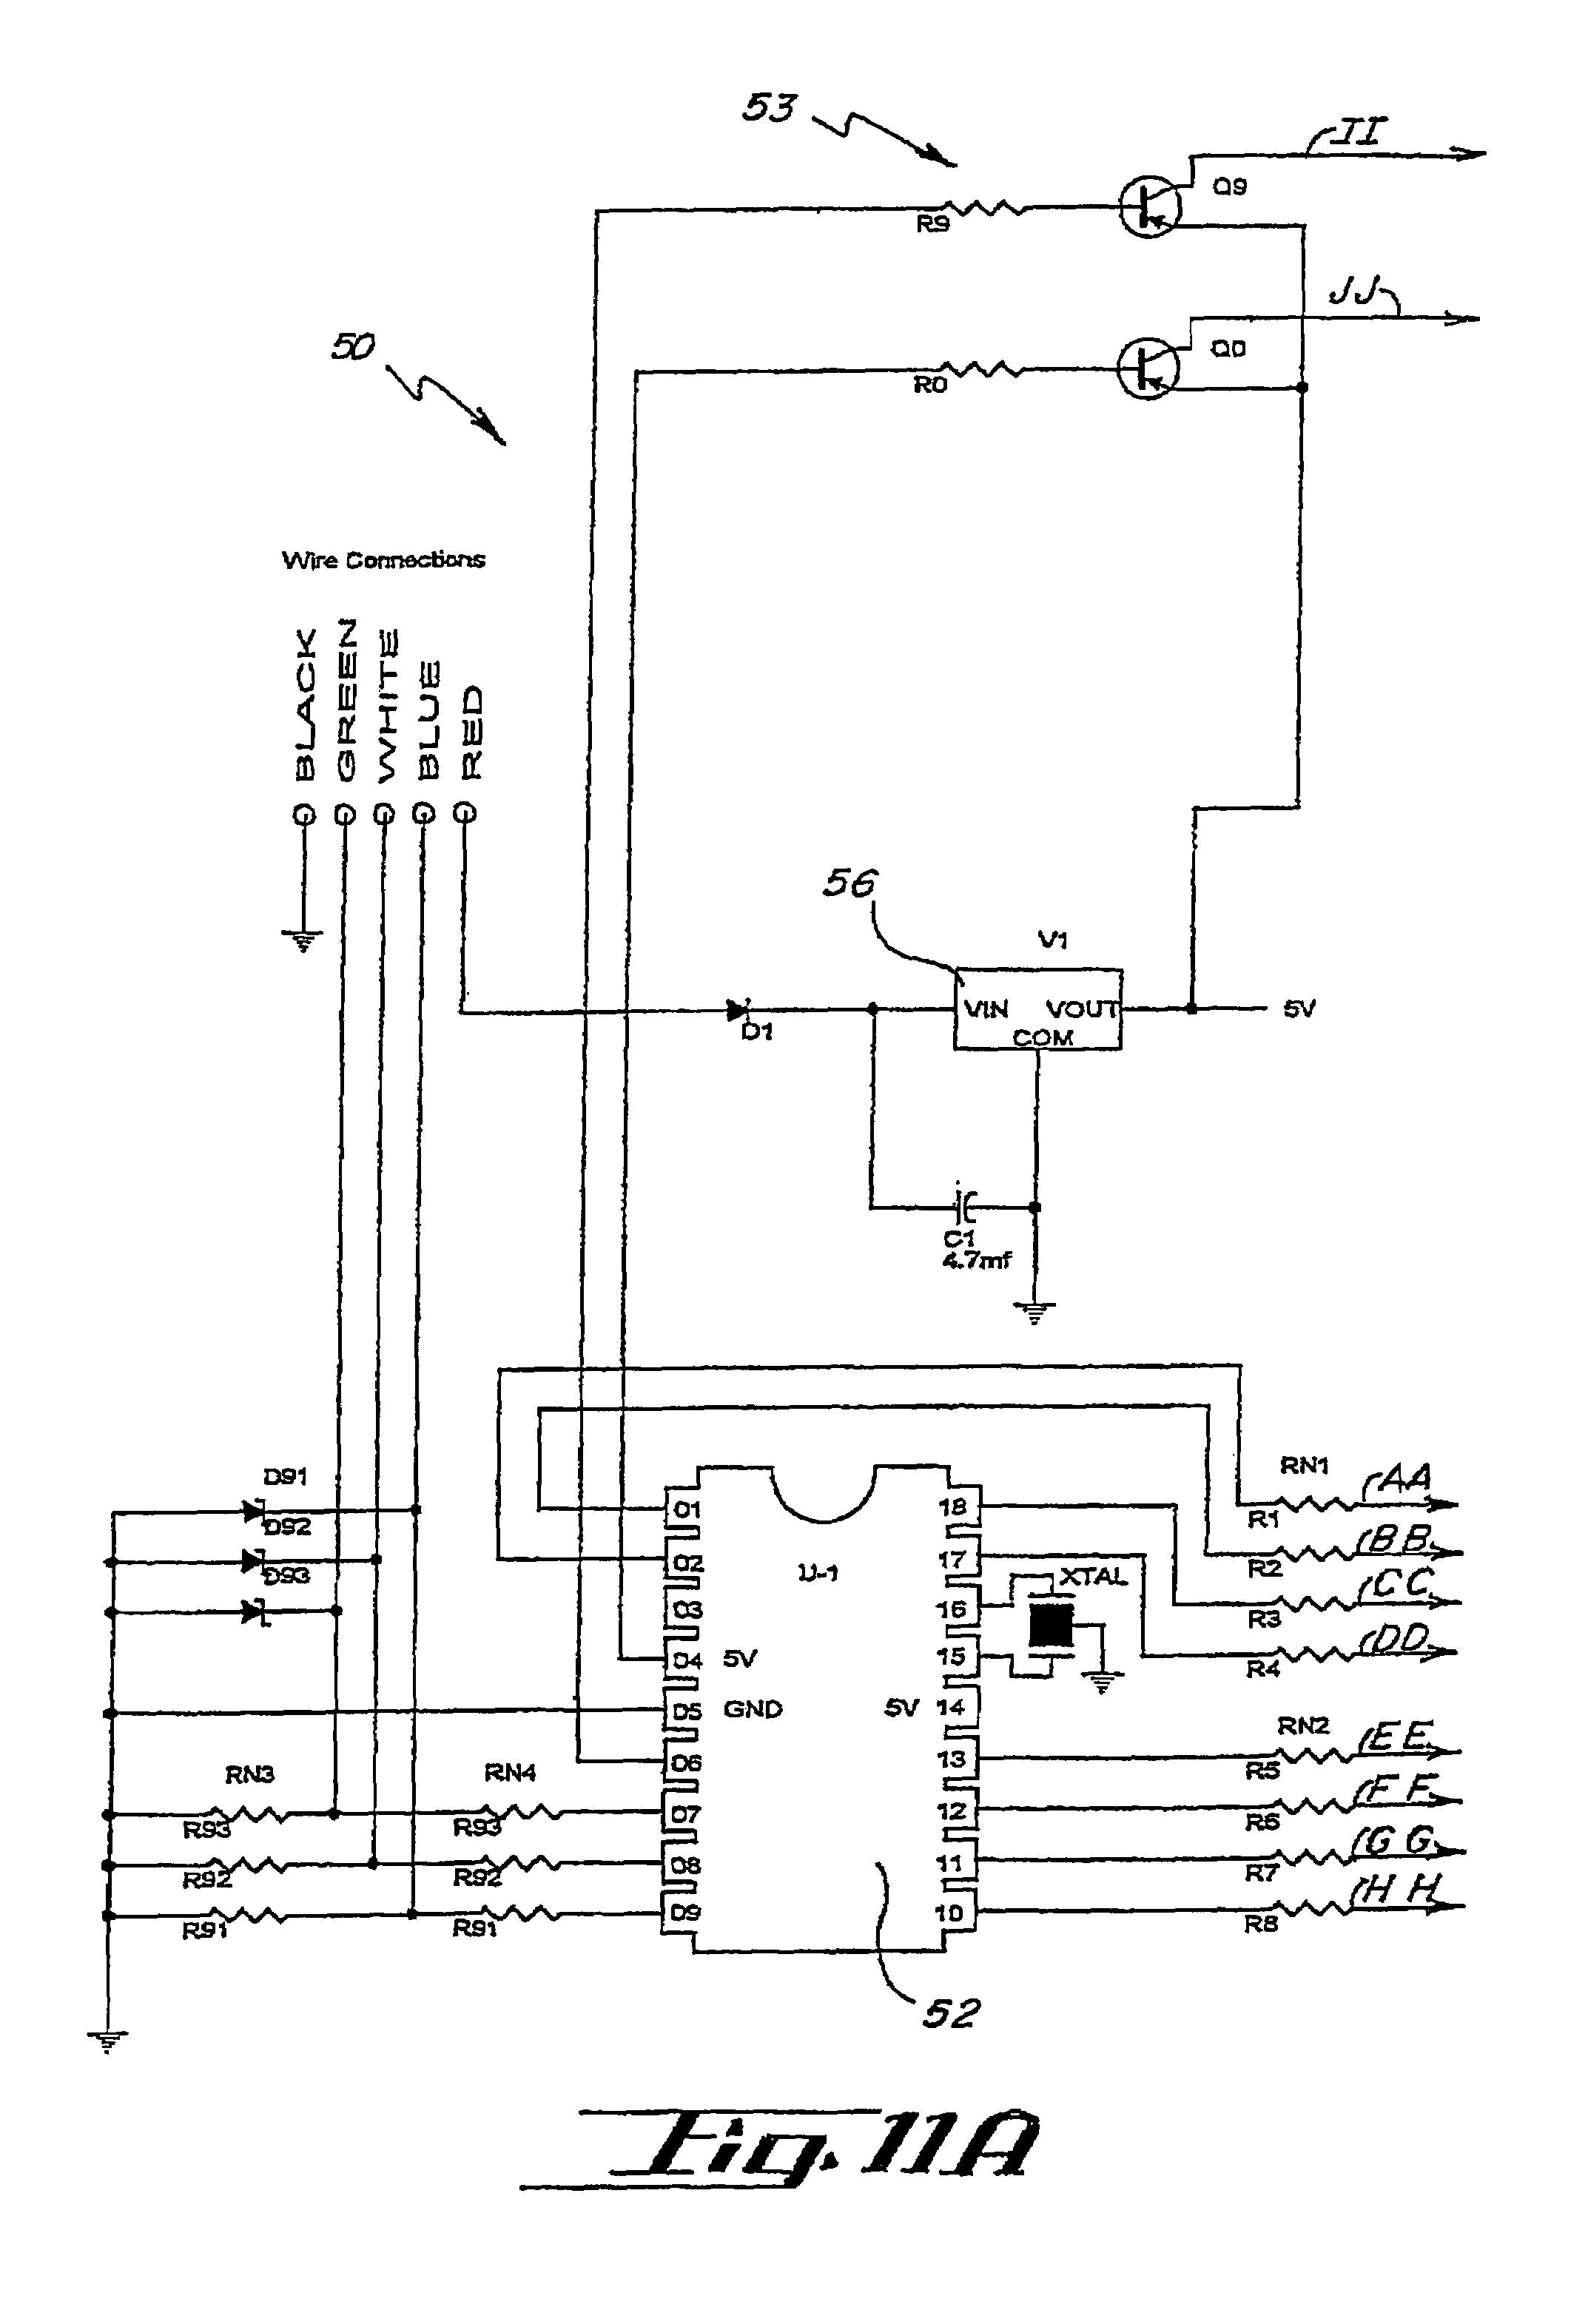 small resolution of best of wiring diagram for shop lights diagrams digramssample diagramimages wiringdiagramsample wiringdiagram